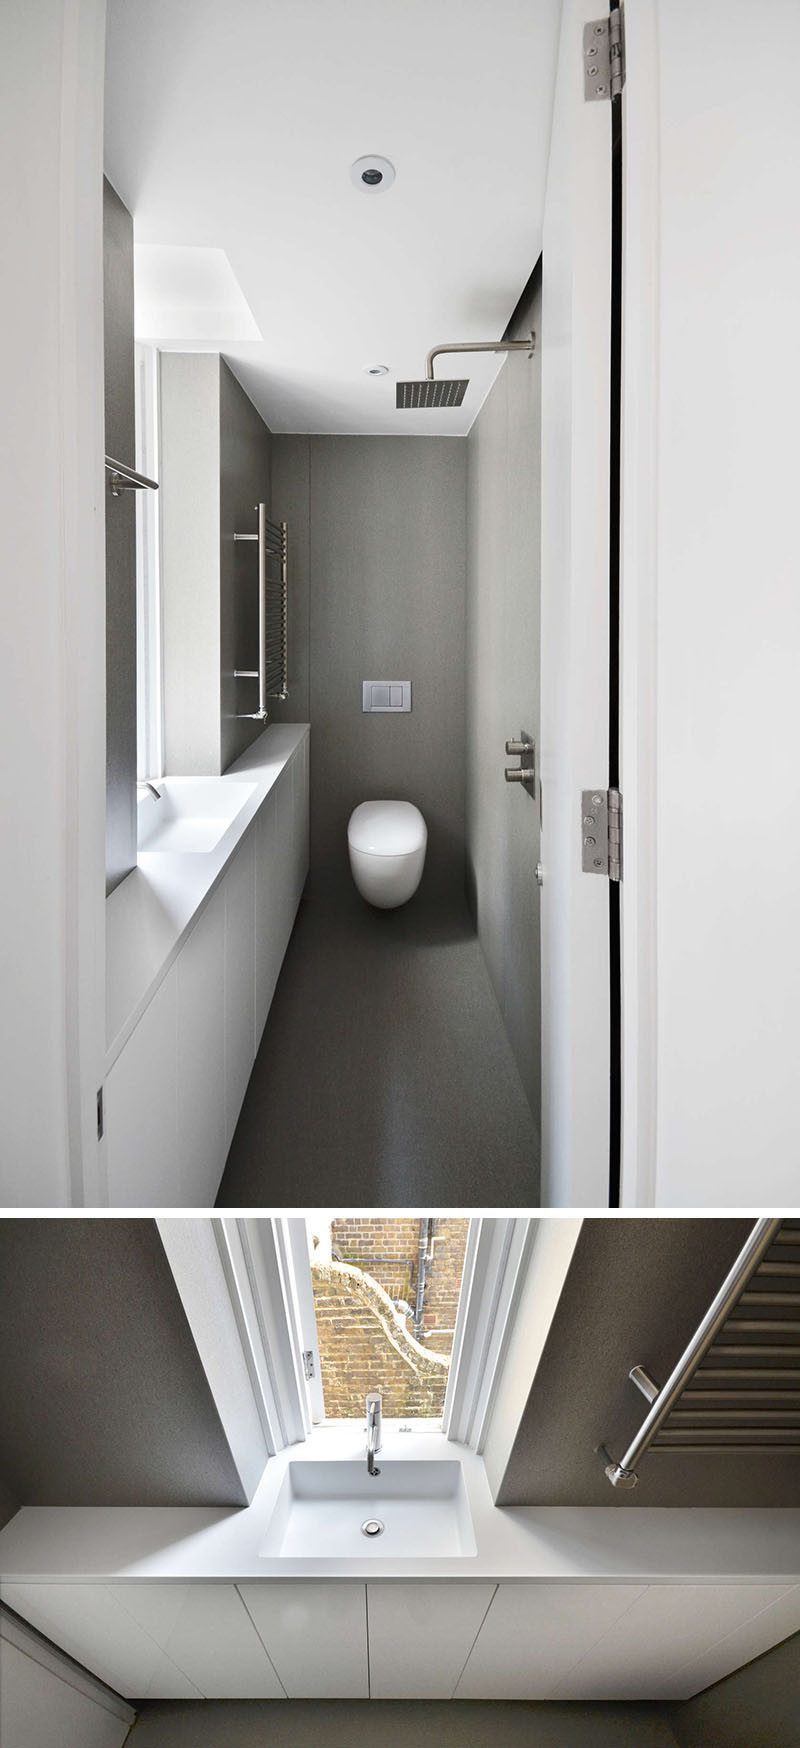 The bathroom in this London apartment is small and very long, so they had to position the shower head directly opposite the vanity and sink.